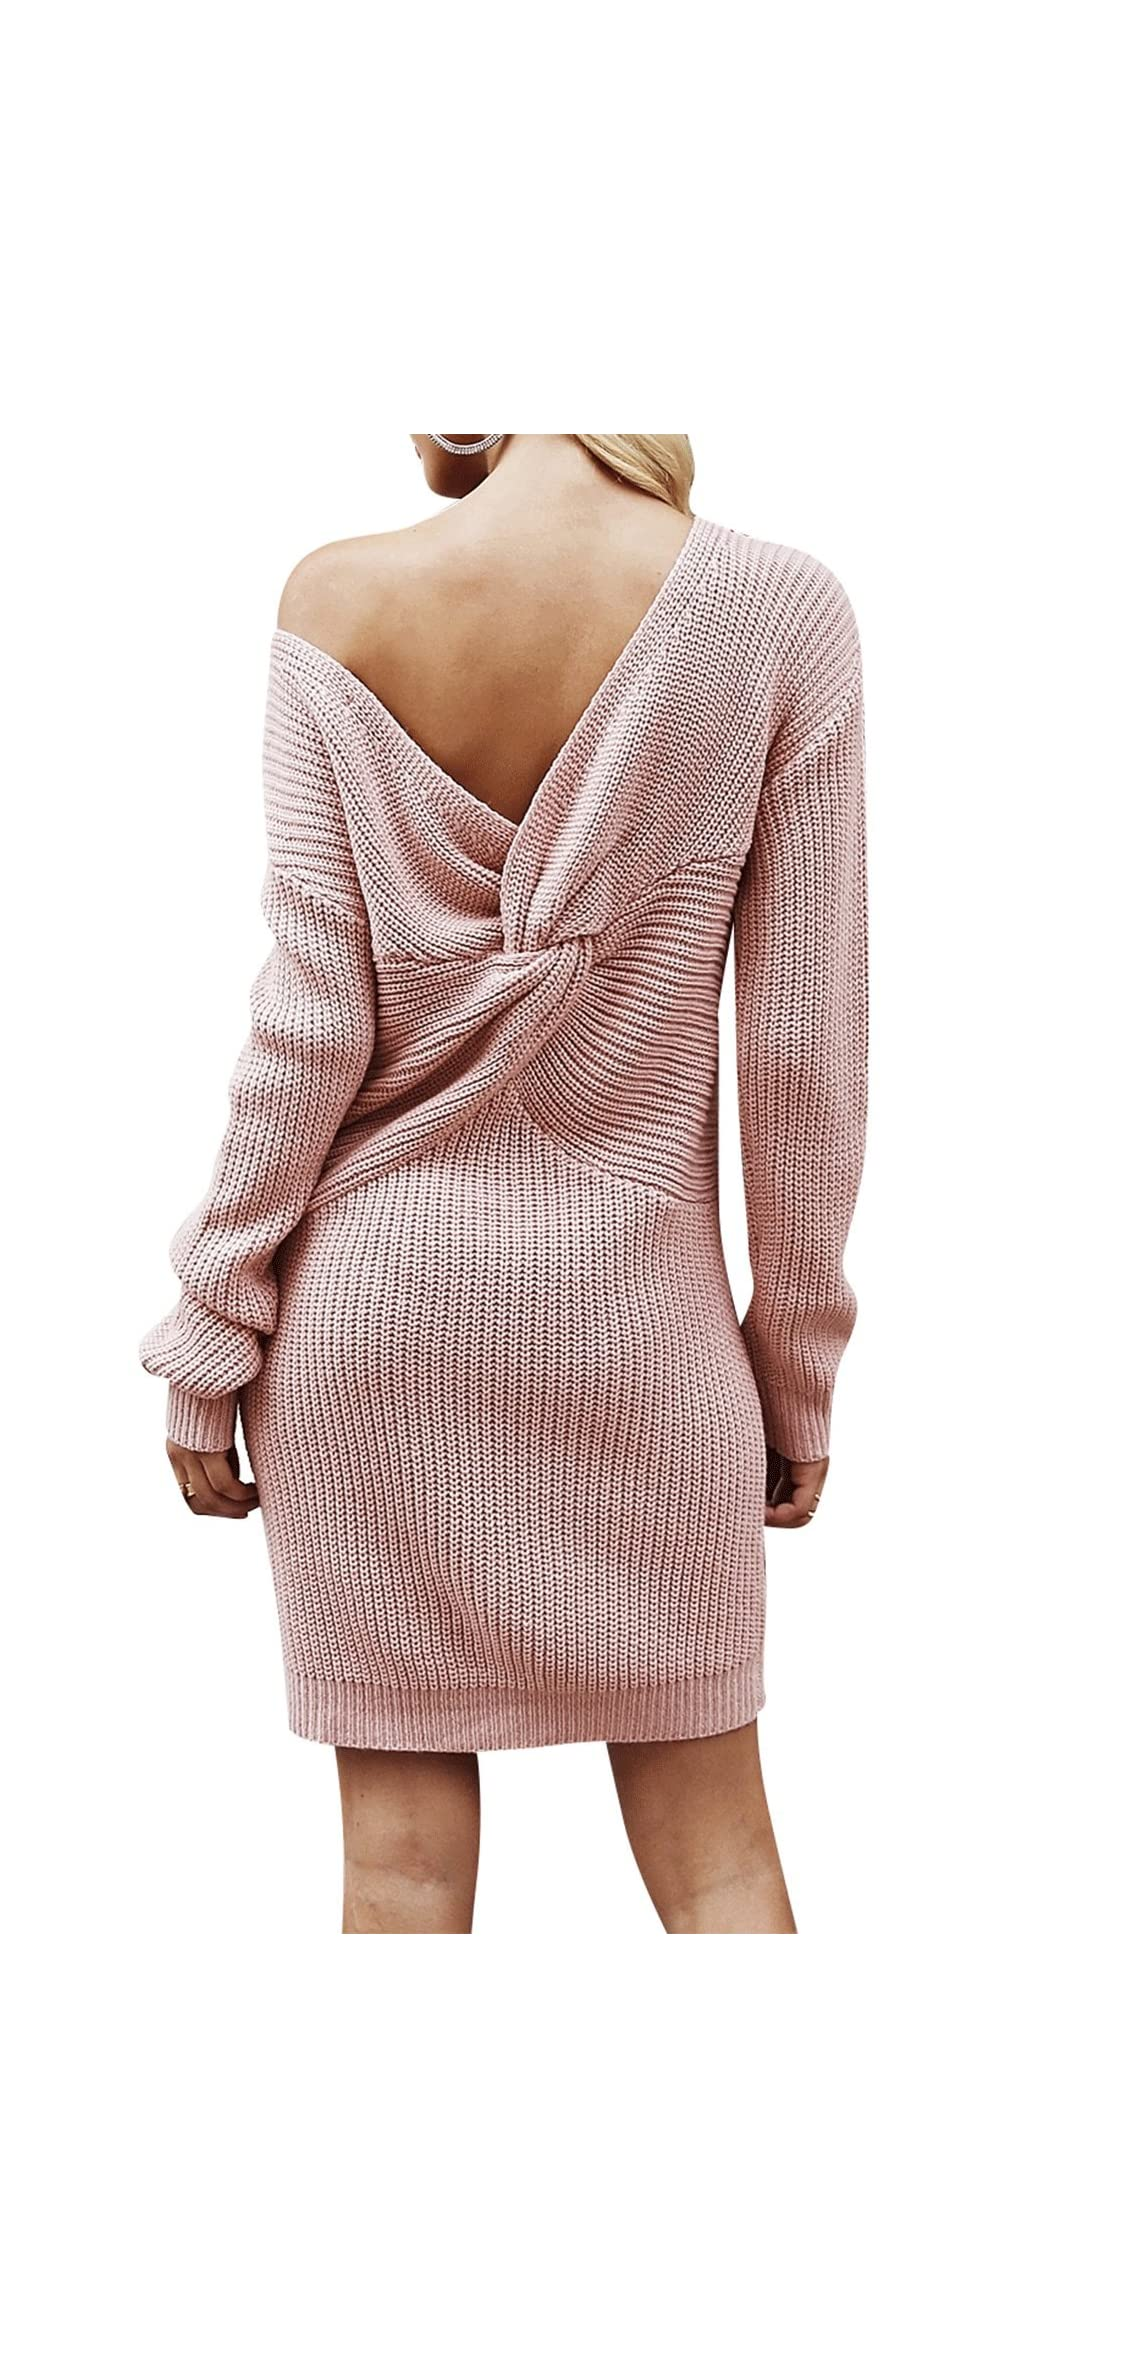 Women's Casual Long Sleeve Off The Shoulder Knitted Mini